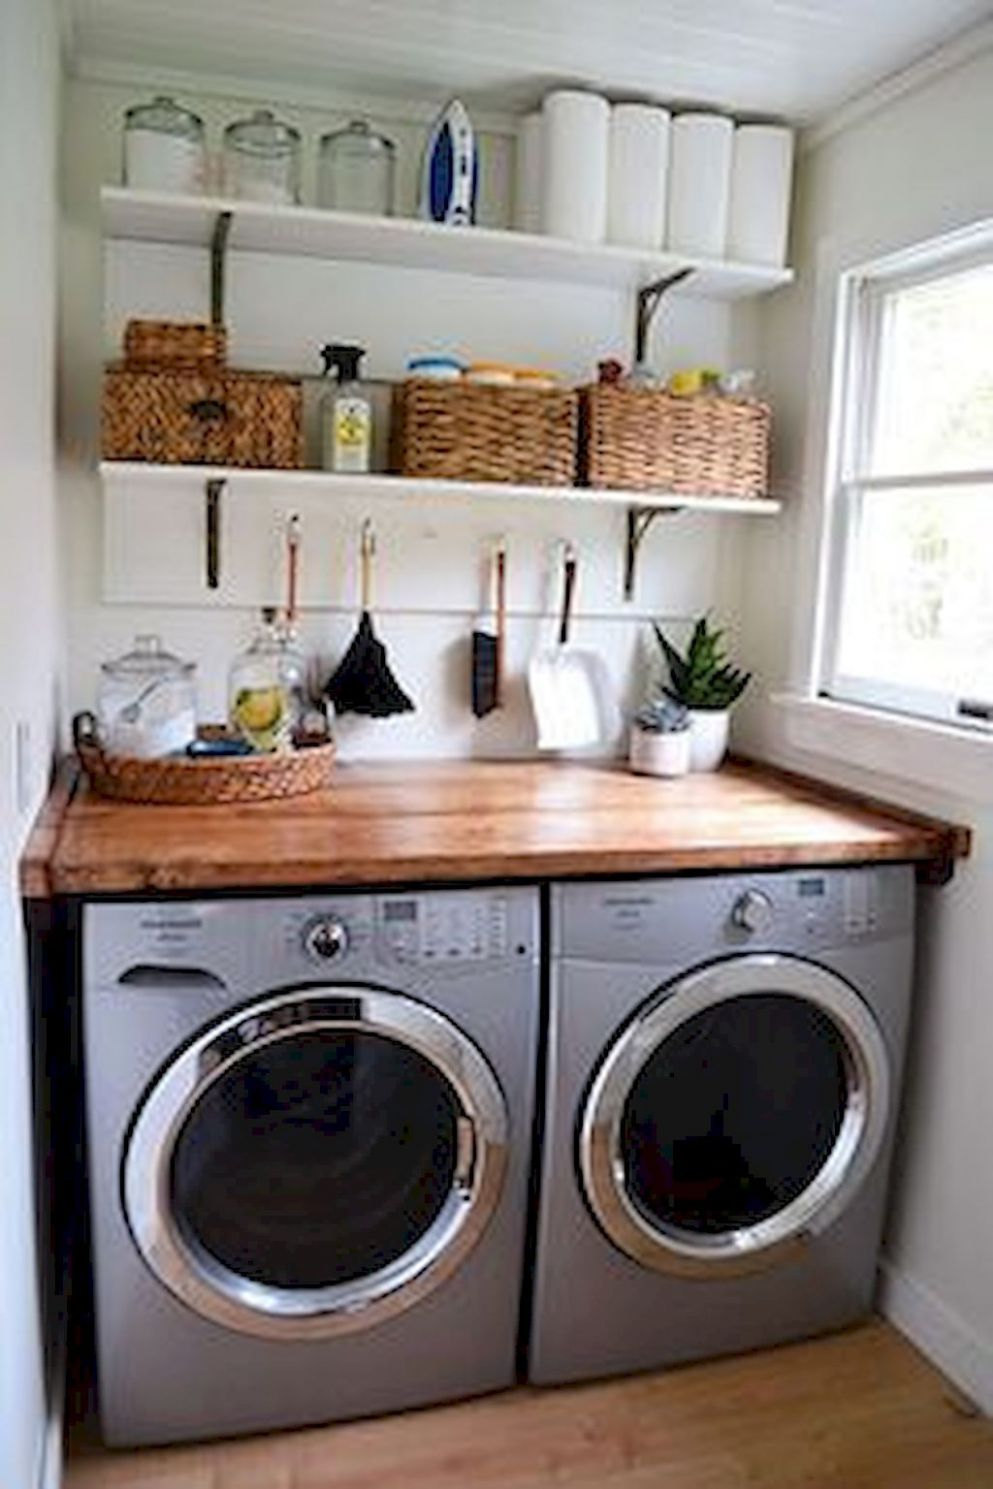 8 First Apartment Laundry Room Decor Ideas Remodel   Laundry room ...